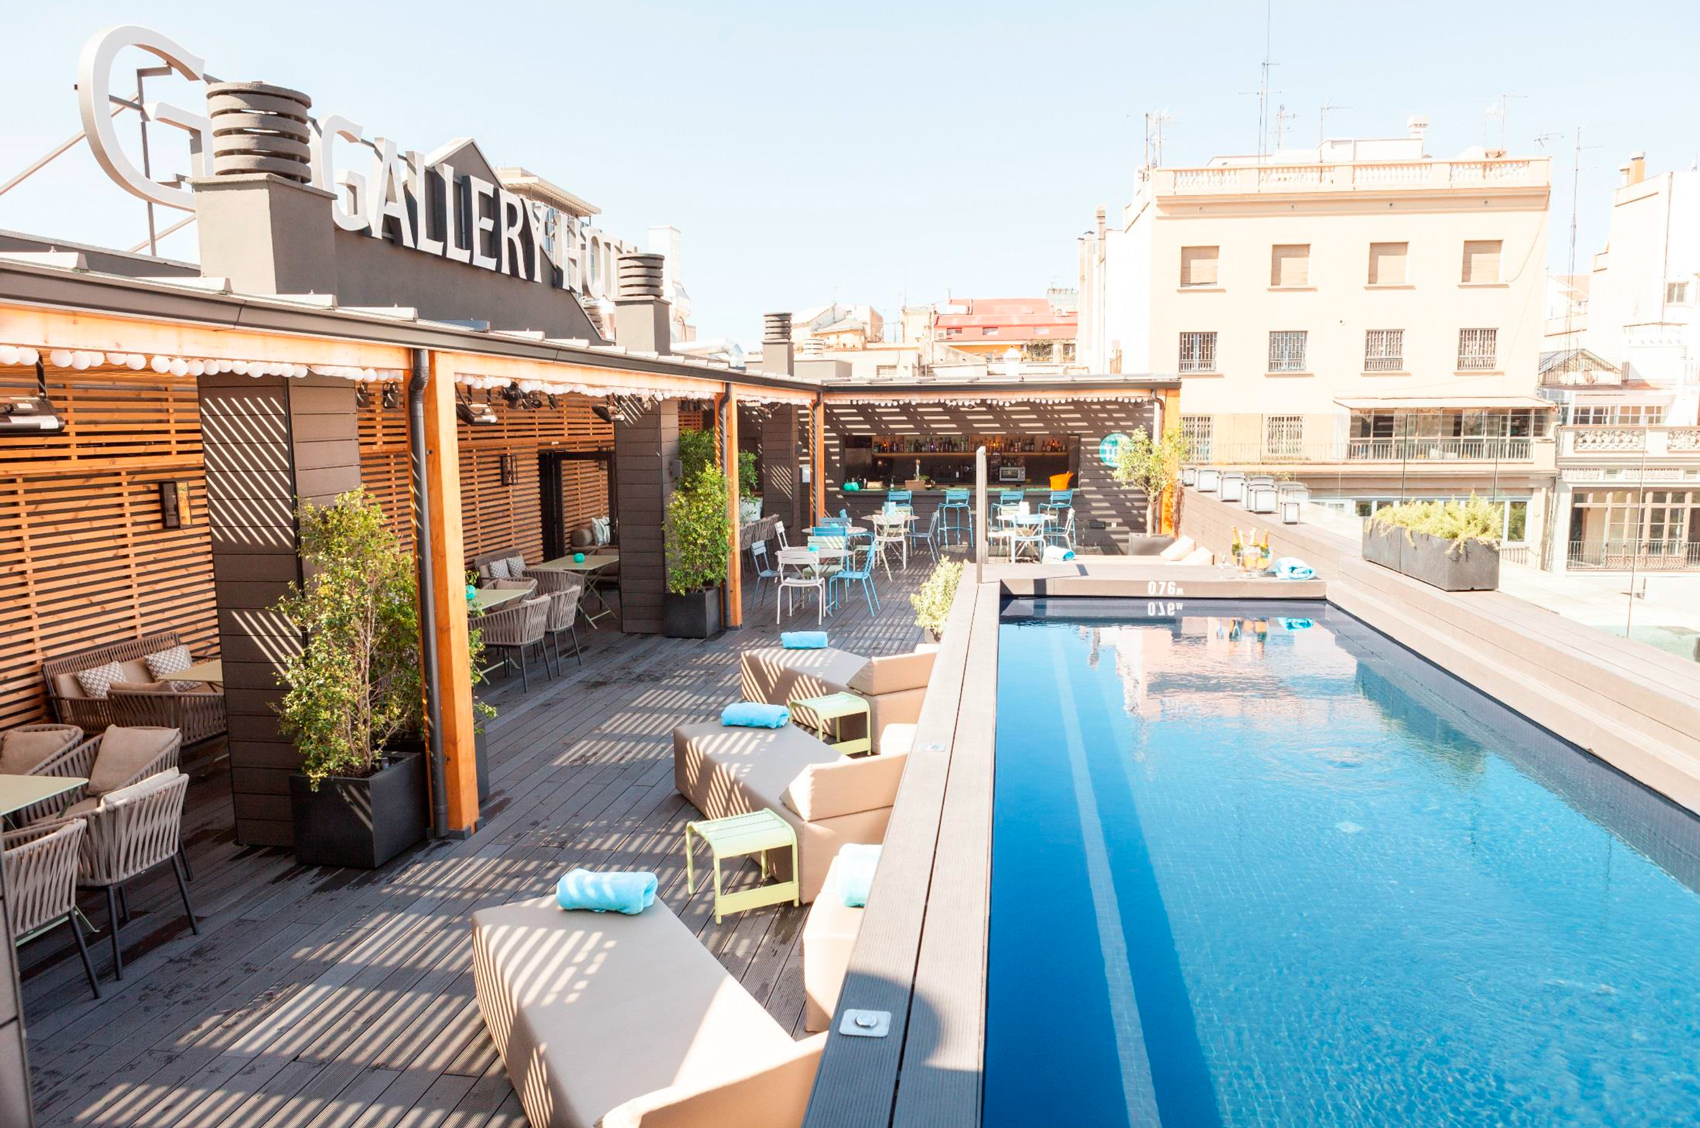 Terraza The Top en el Gallery Hotel de Barcelona